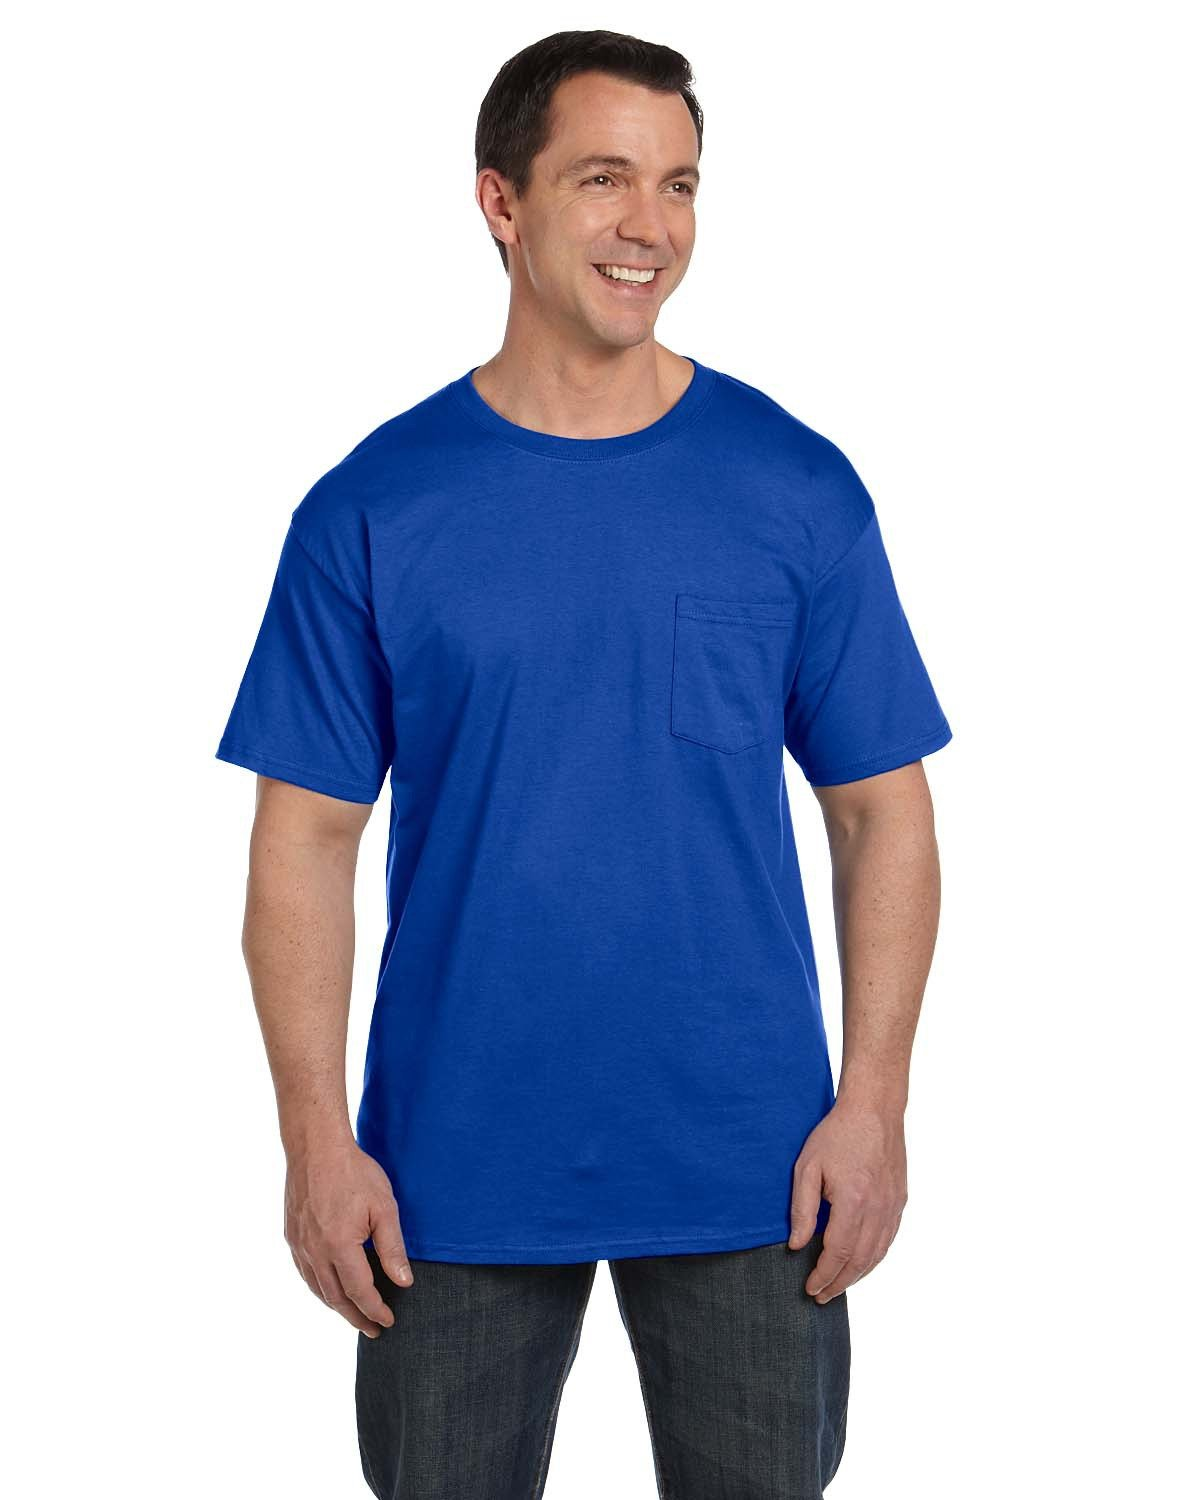 Hanes Adult Beefy-T® with Pocket DEEP ROYAL